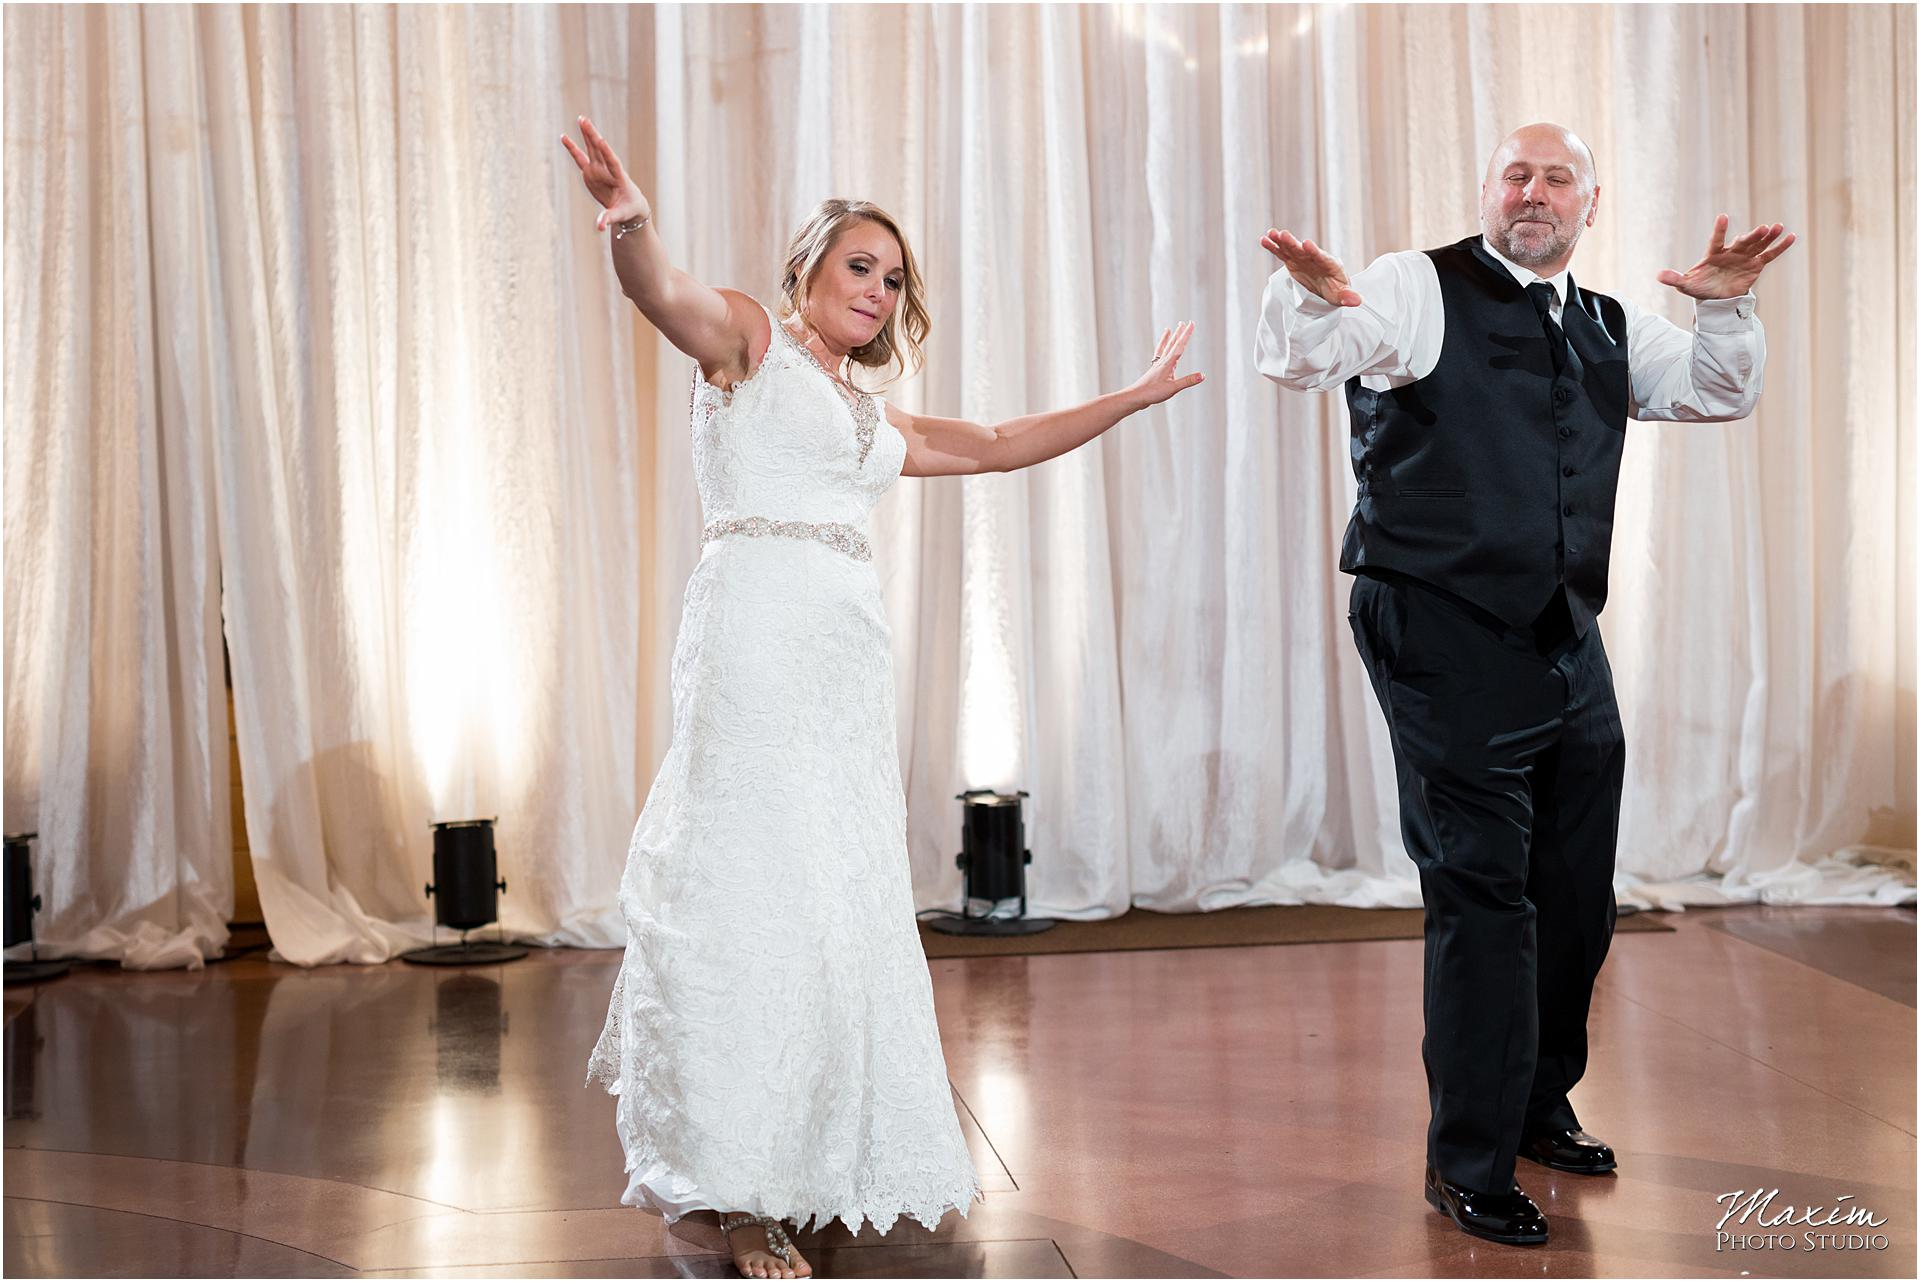 Canopy Creek Dayton Ohio Wedding Reception Bride father dance